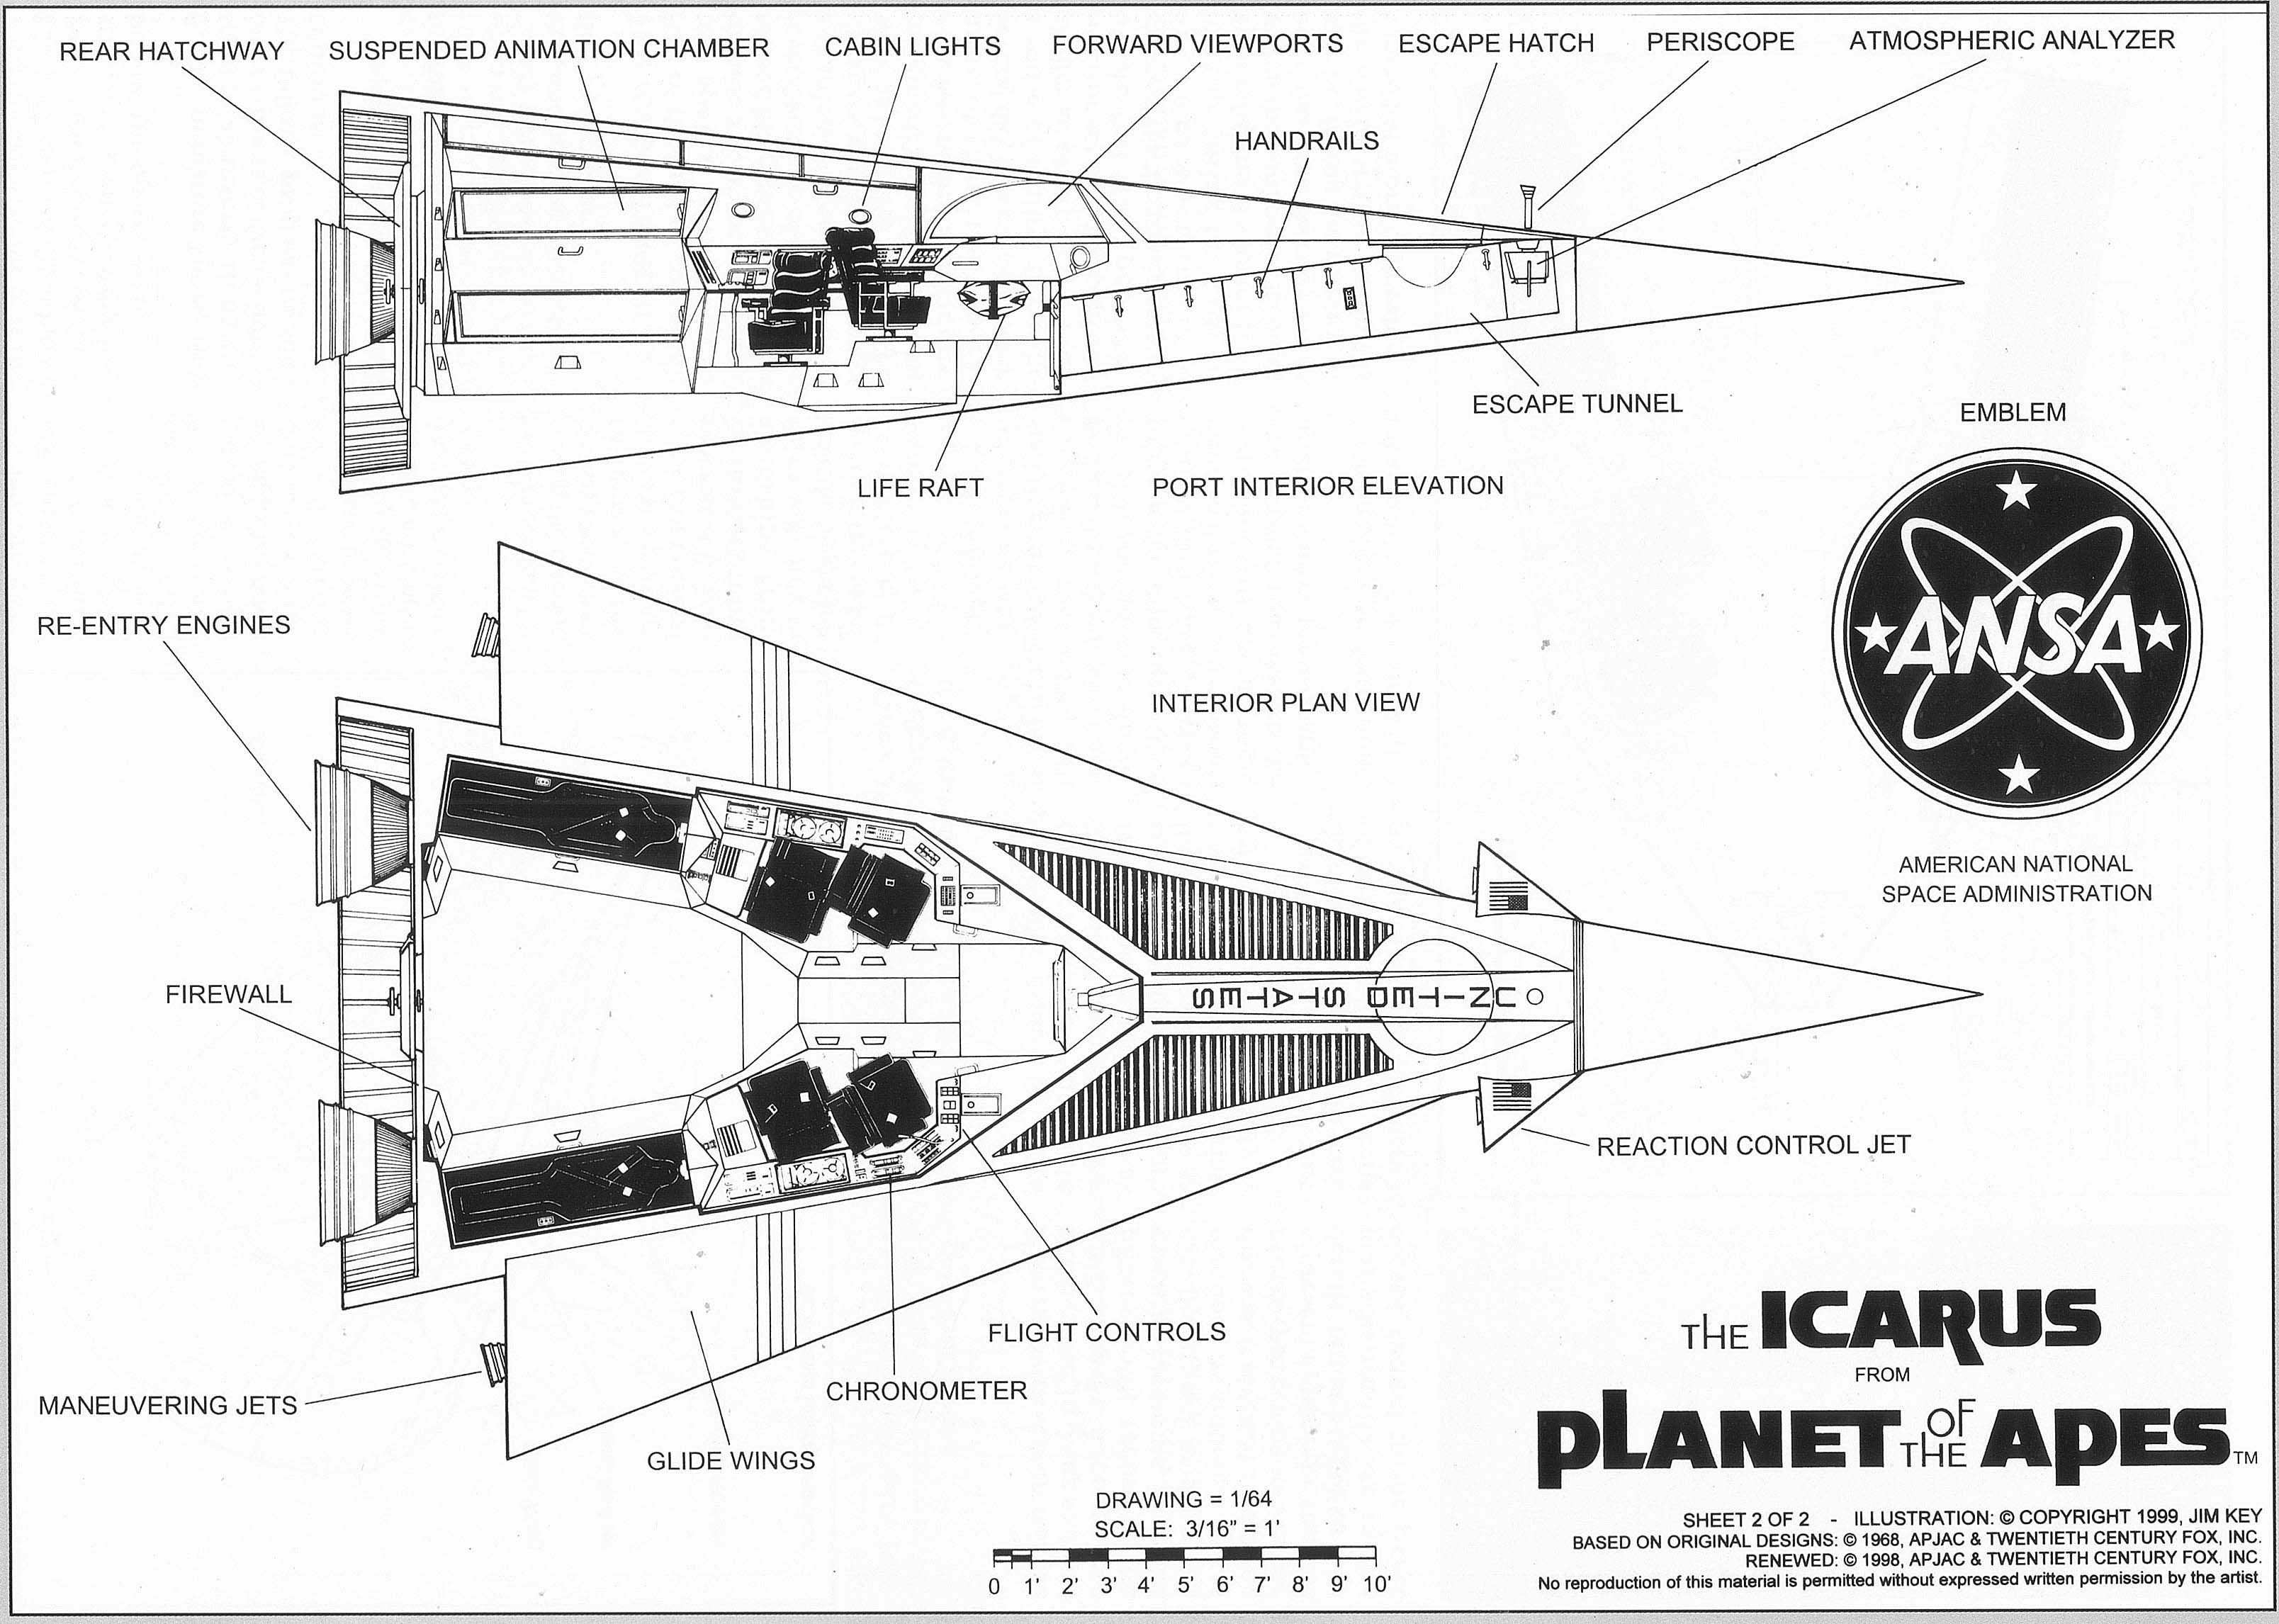 The Icarus Blueprints From The Planet Of The Apes